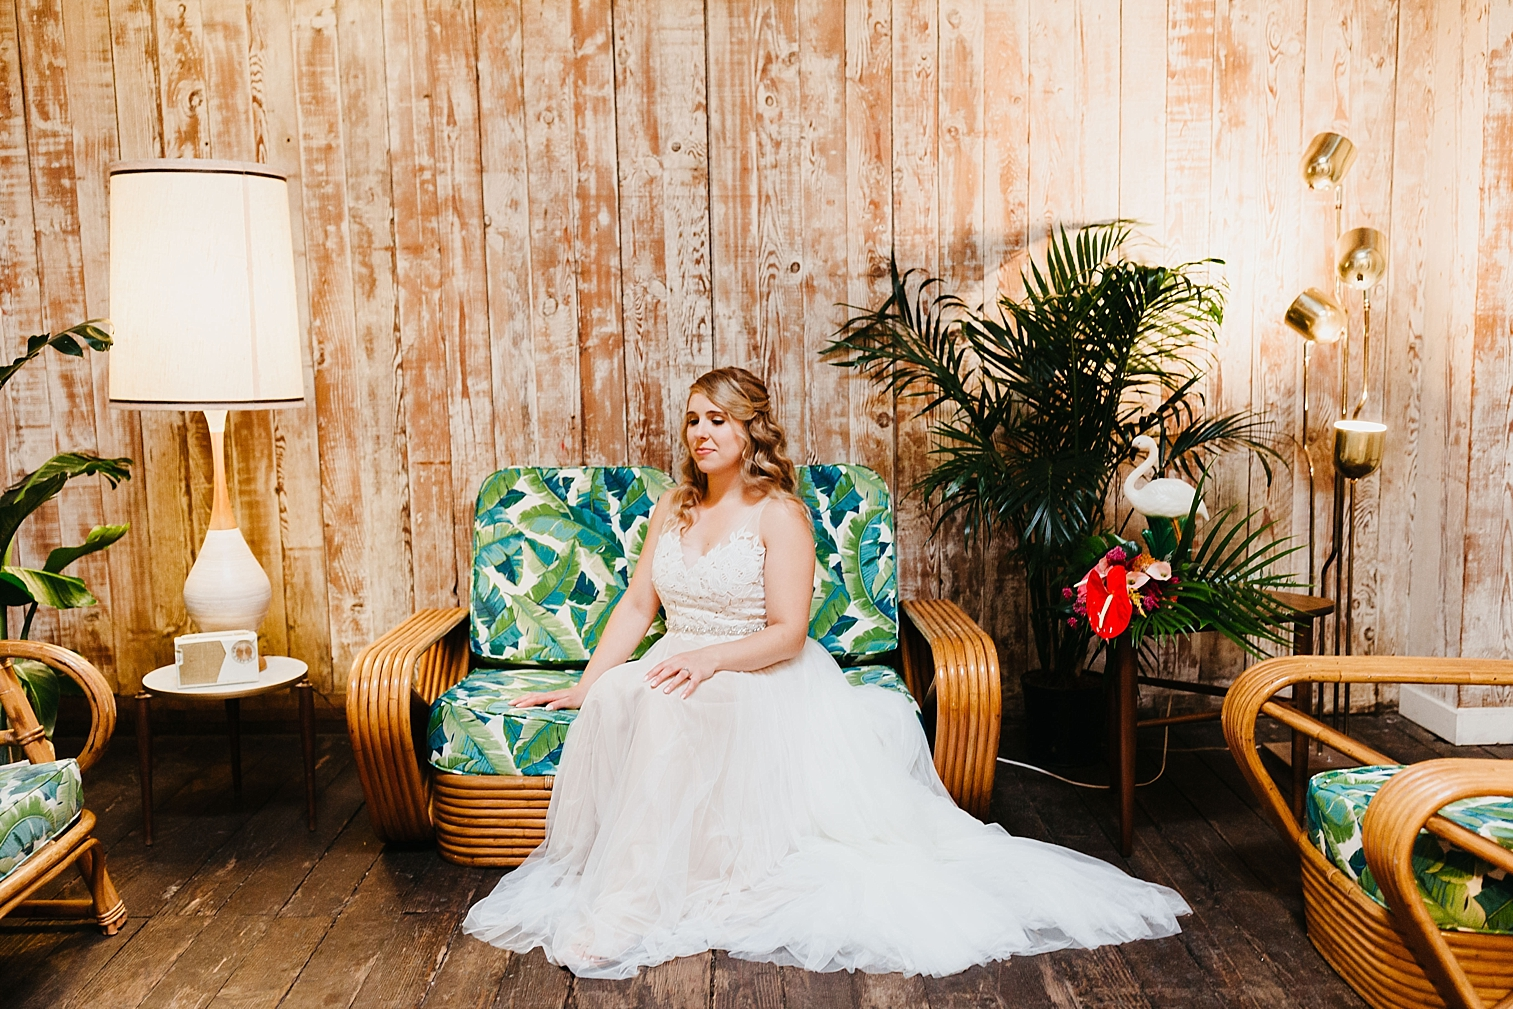 Tropical-Vintage-Within-Sodo-Wedding-60.jpg